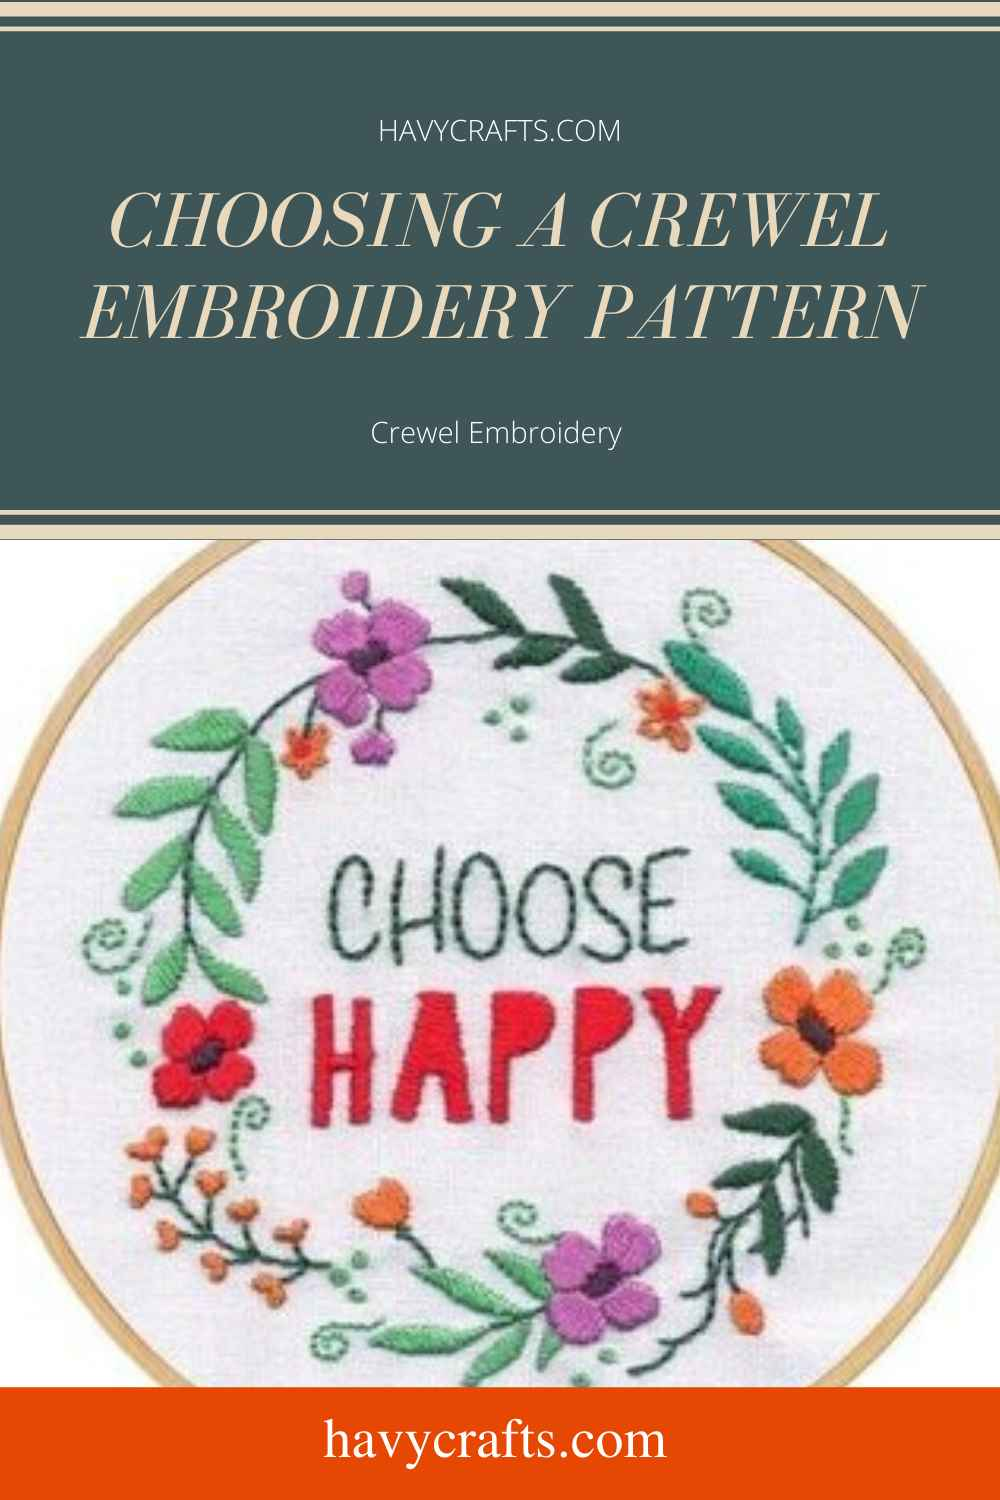 Choosing a Crewel Embroidery Pattern